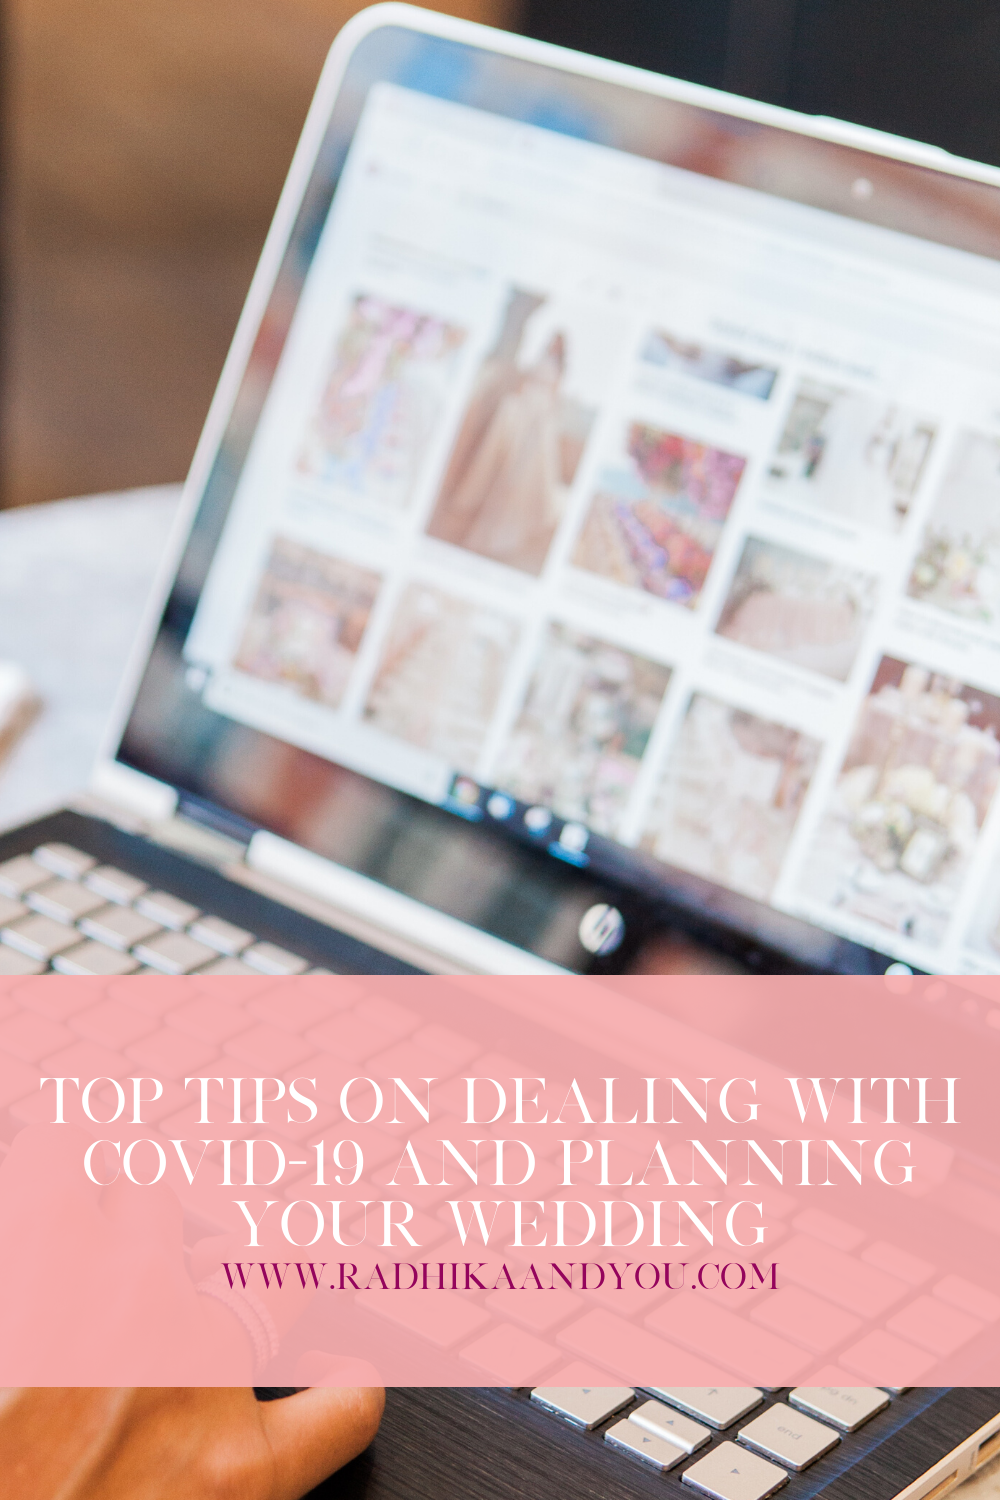 radhikaandyou-tips-on-dealing-with-covid-19-and-planning-your-wedding